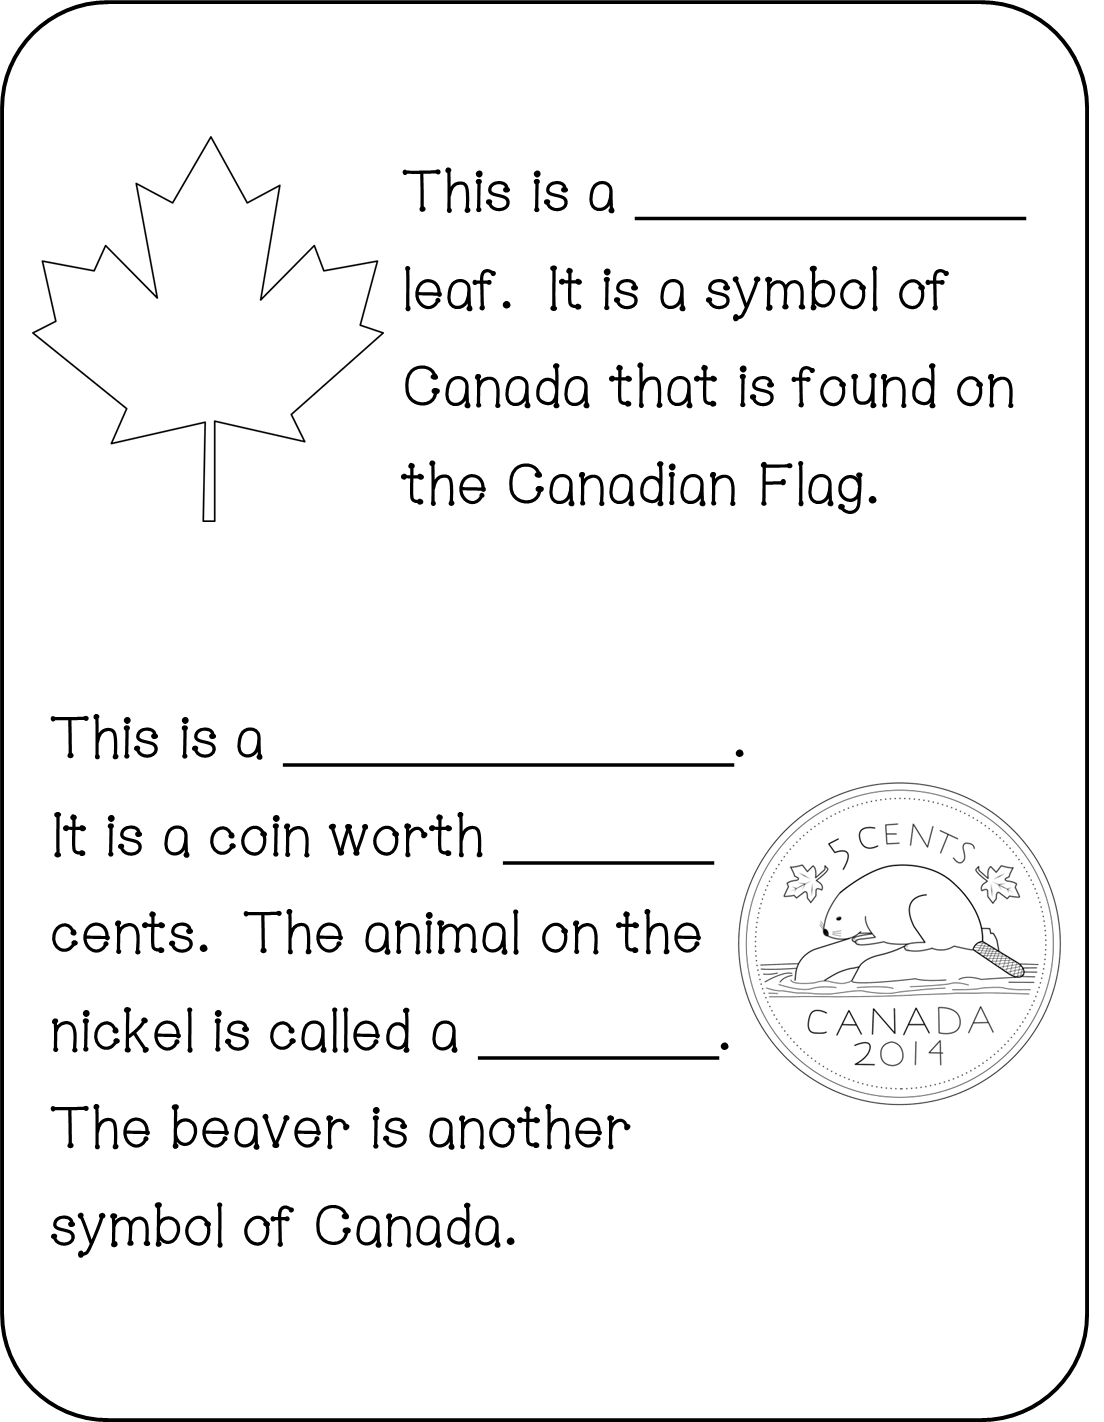 All About Canada